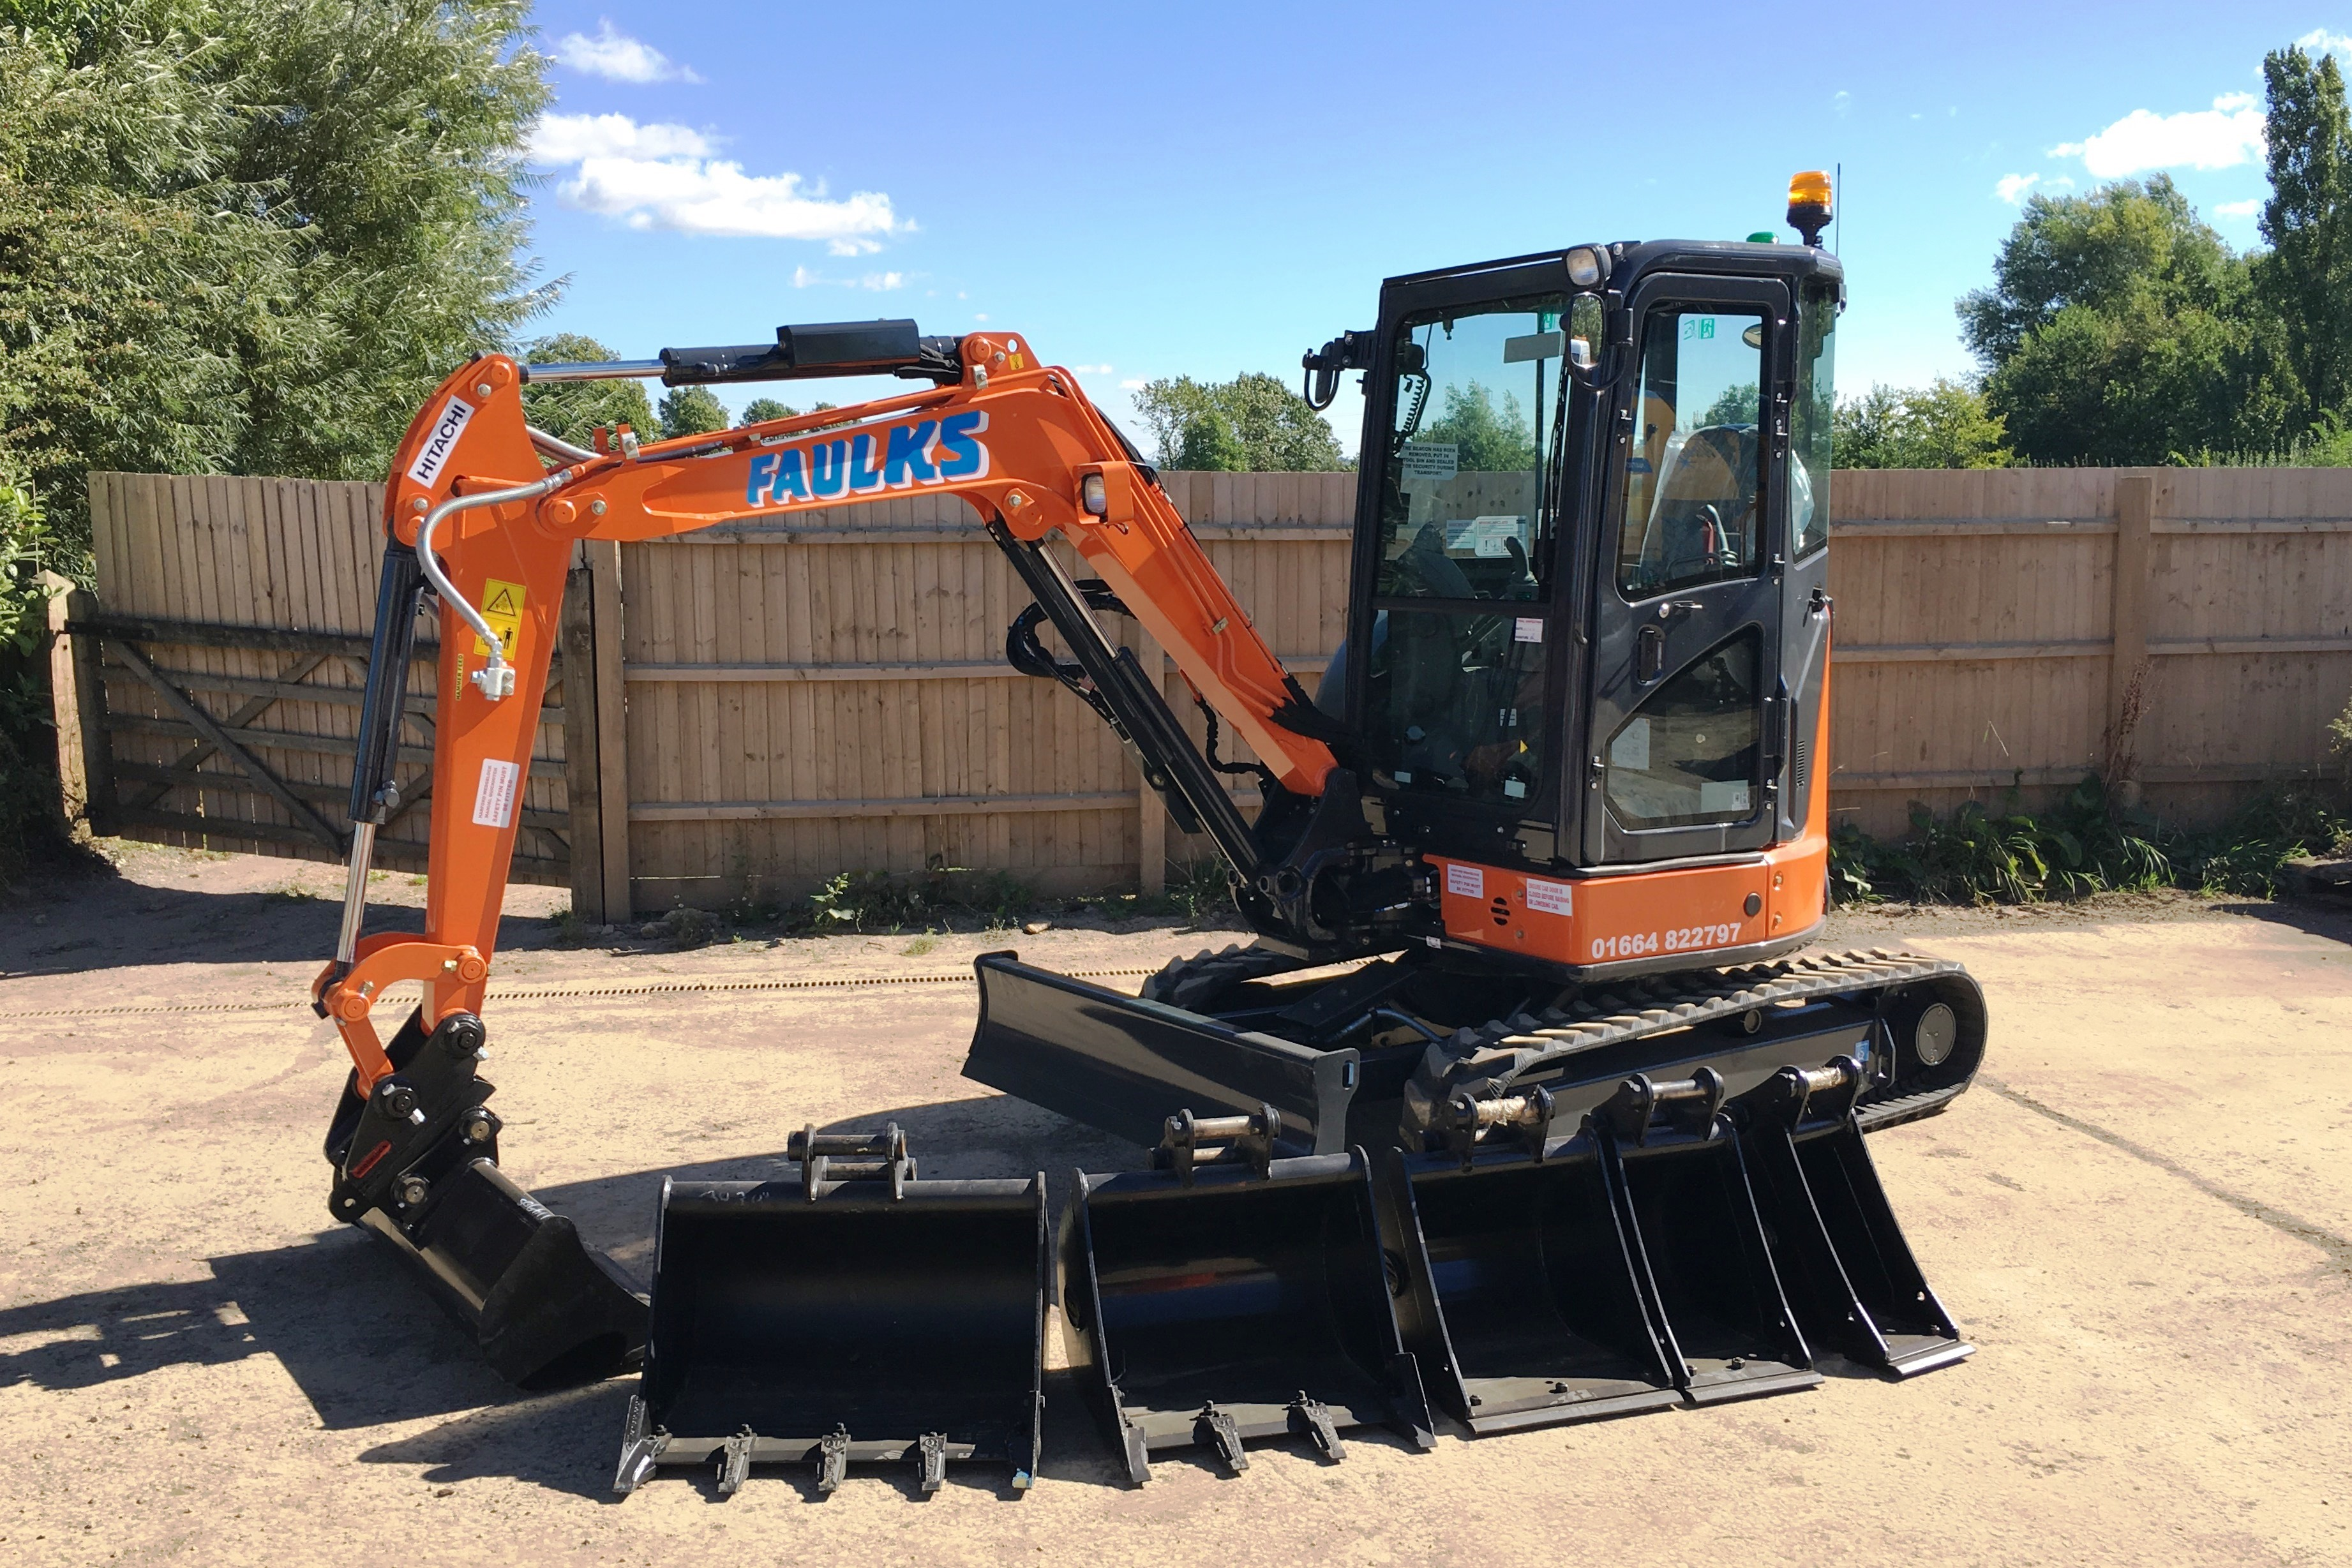 The Hitachi ZX33 tracked excavator in car park with digger head options lined up, side view